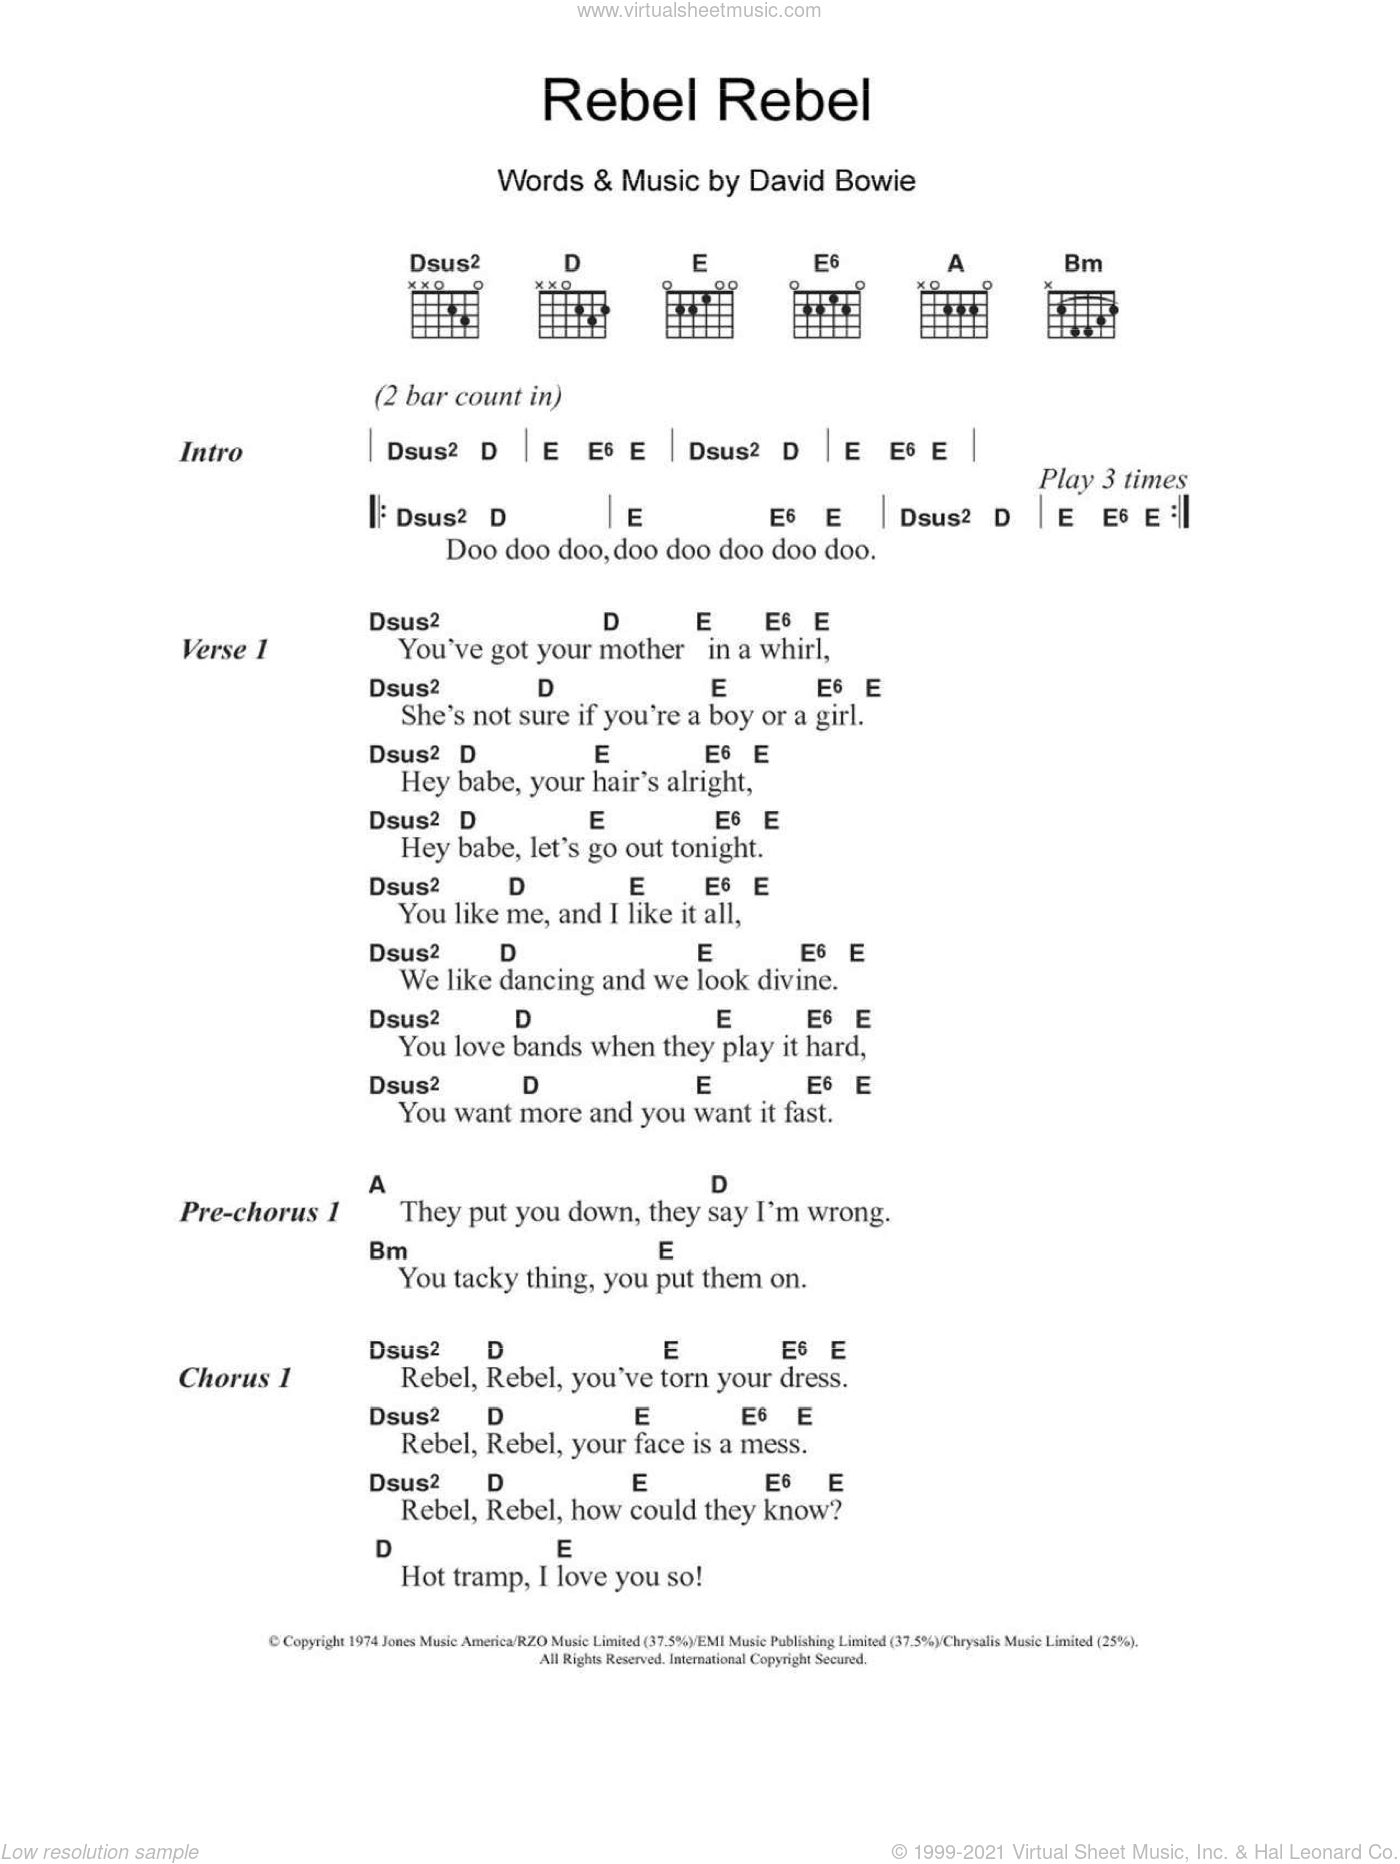 Rebel Rebel sheet music for guitar (chords) by David Bowie. Score Image Preview.